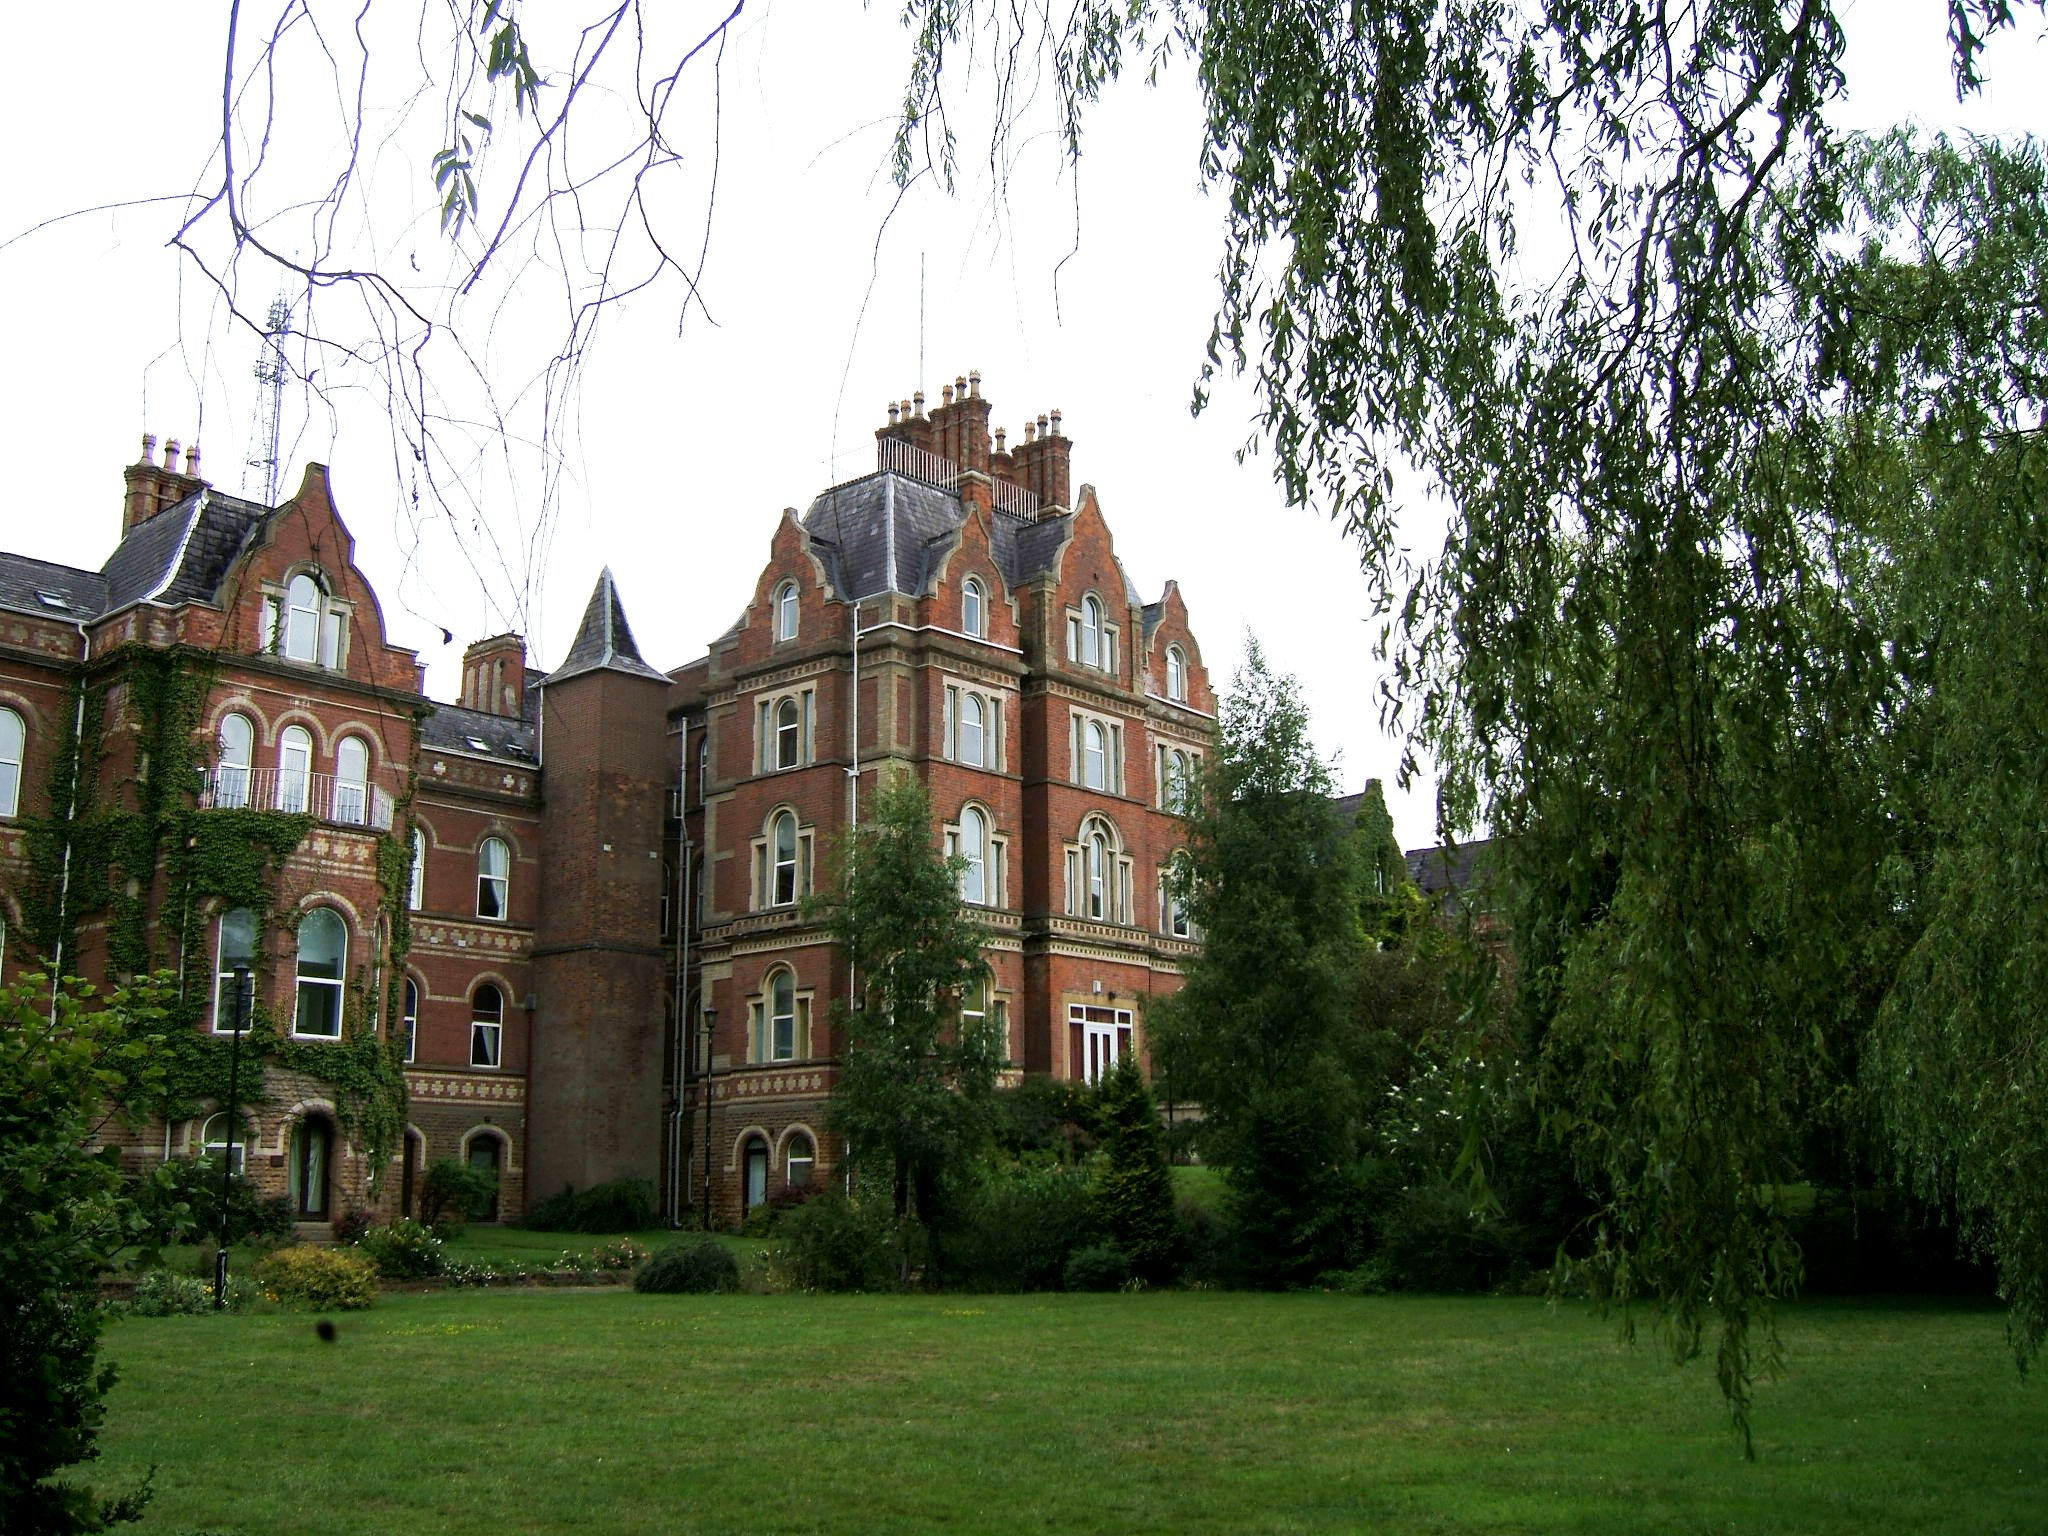 The Coppice Hospital, Nottingham